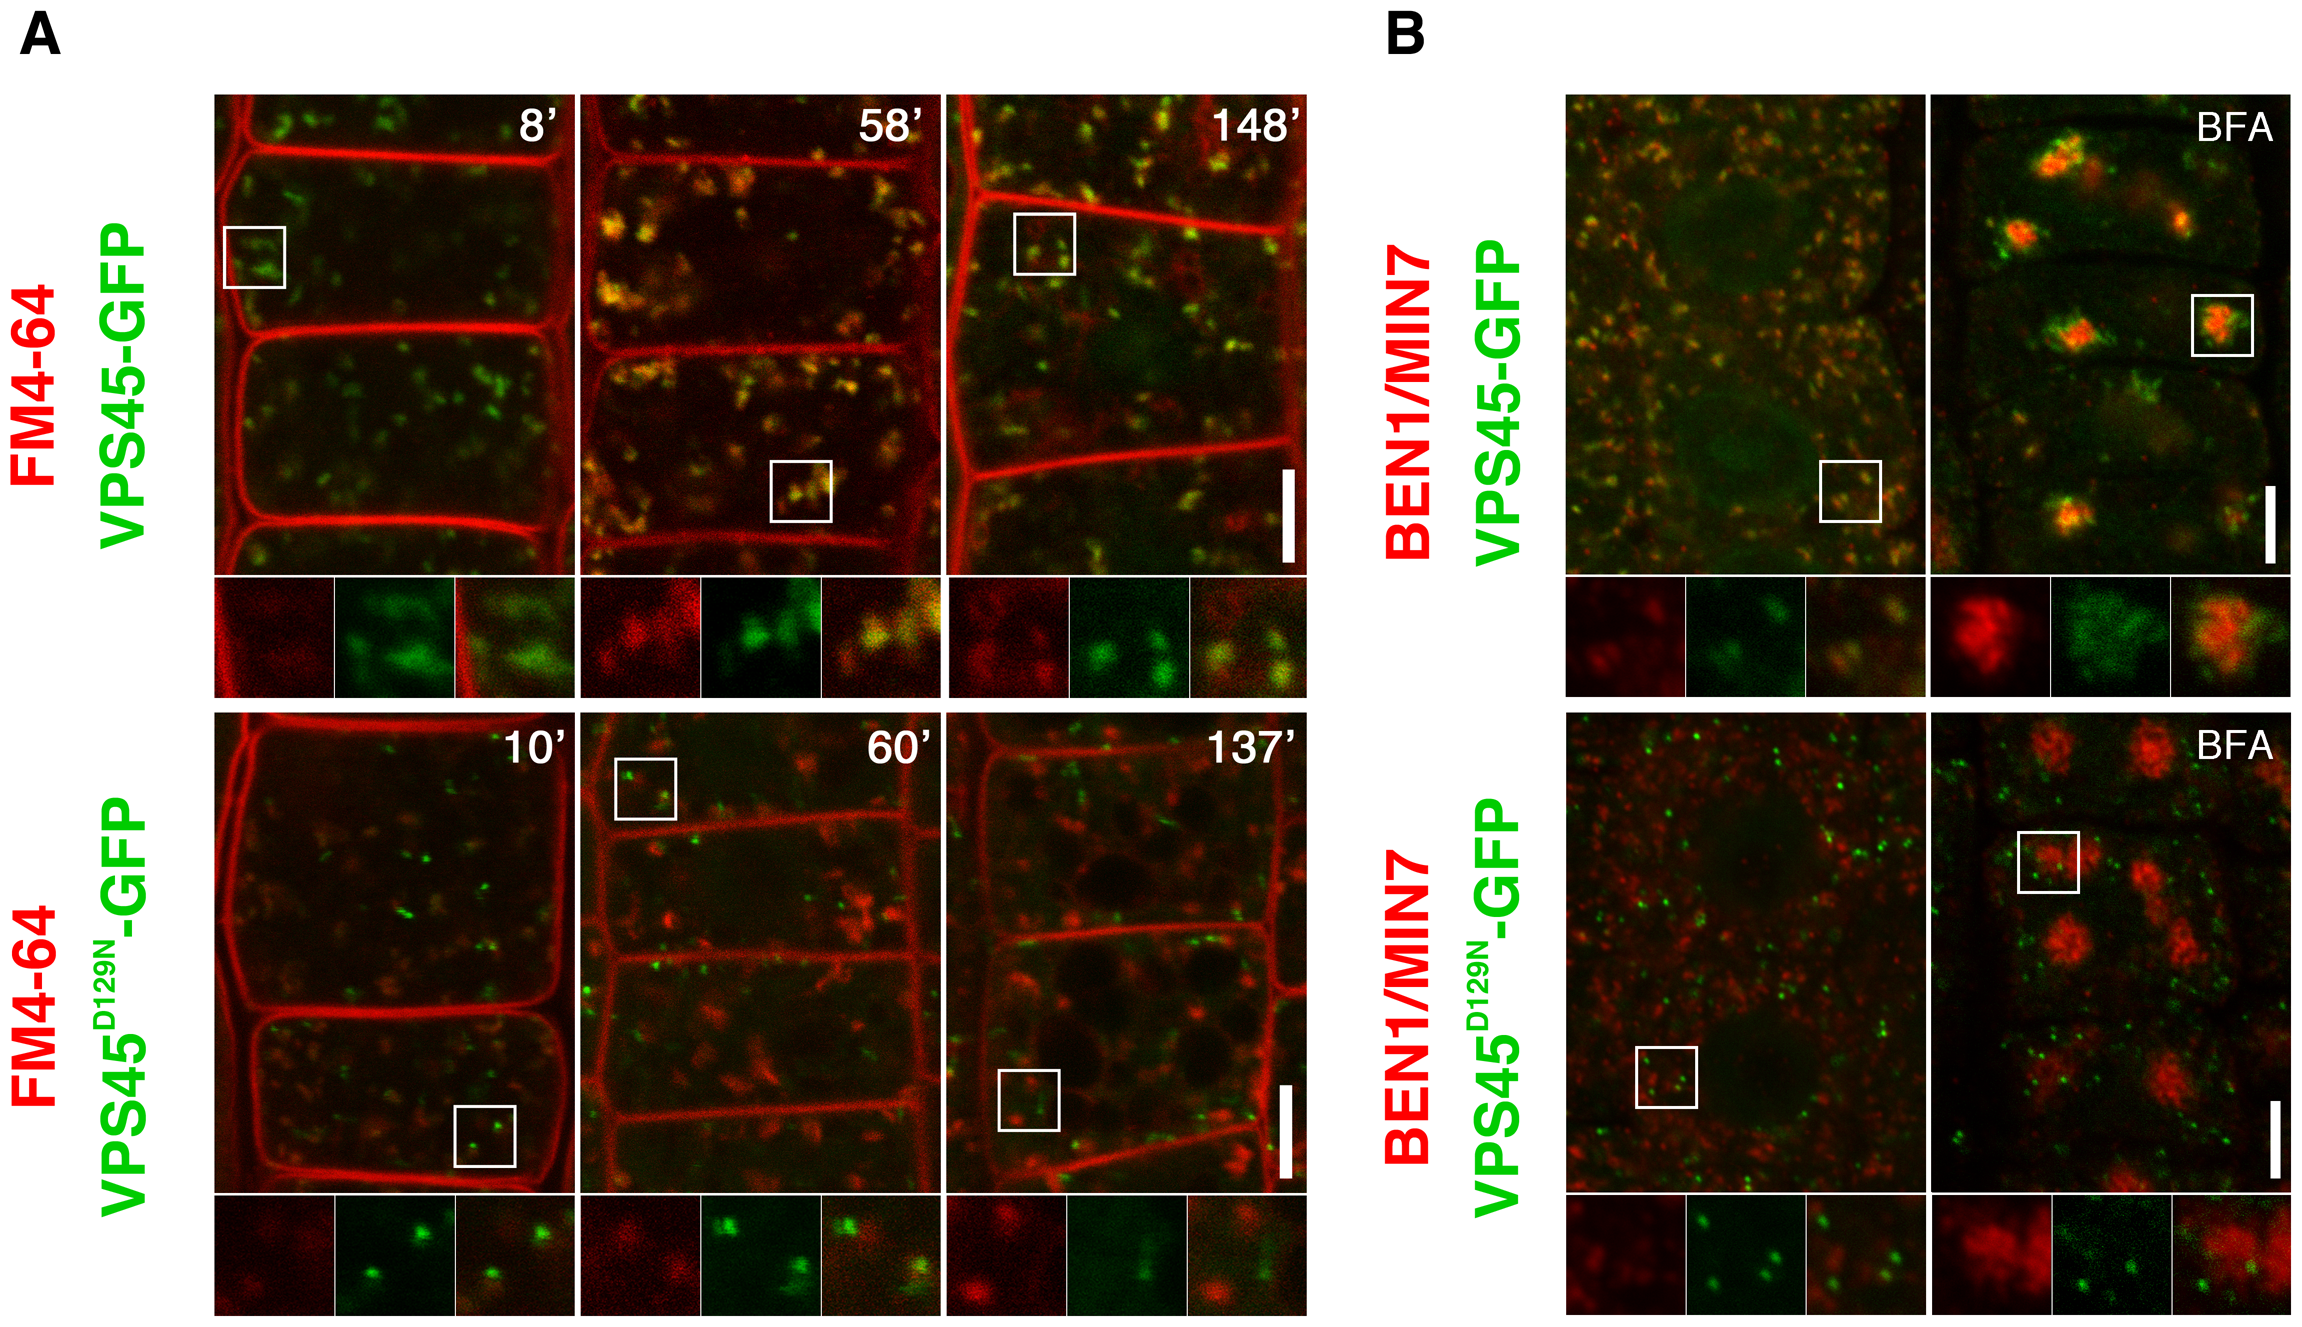 Double labeling experiments reveal early endosomal localization of VPS45 in root epidermal cells.